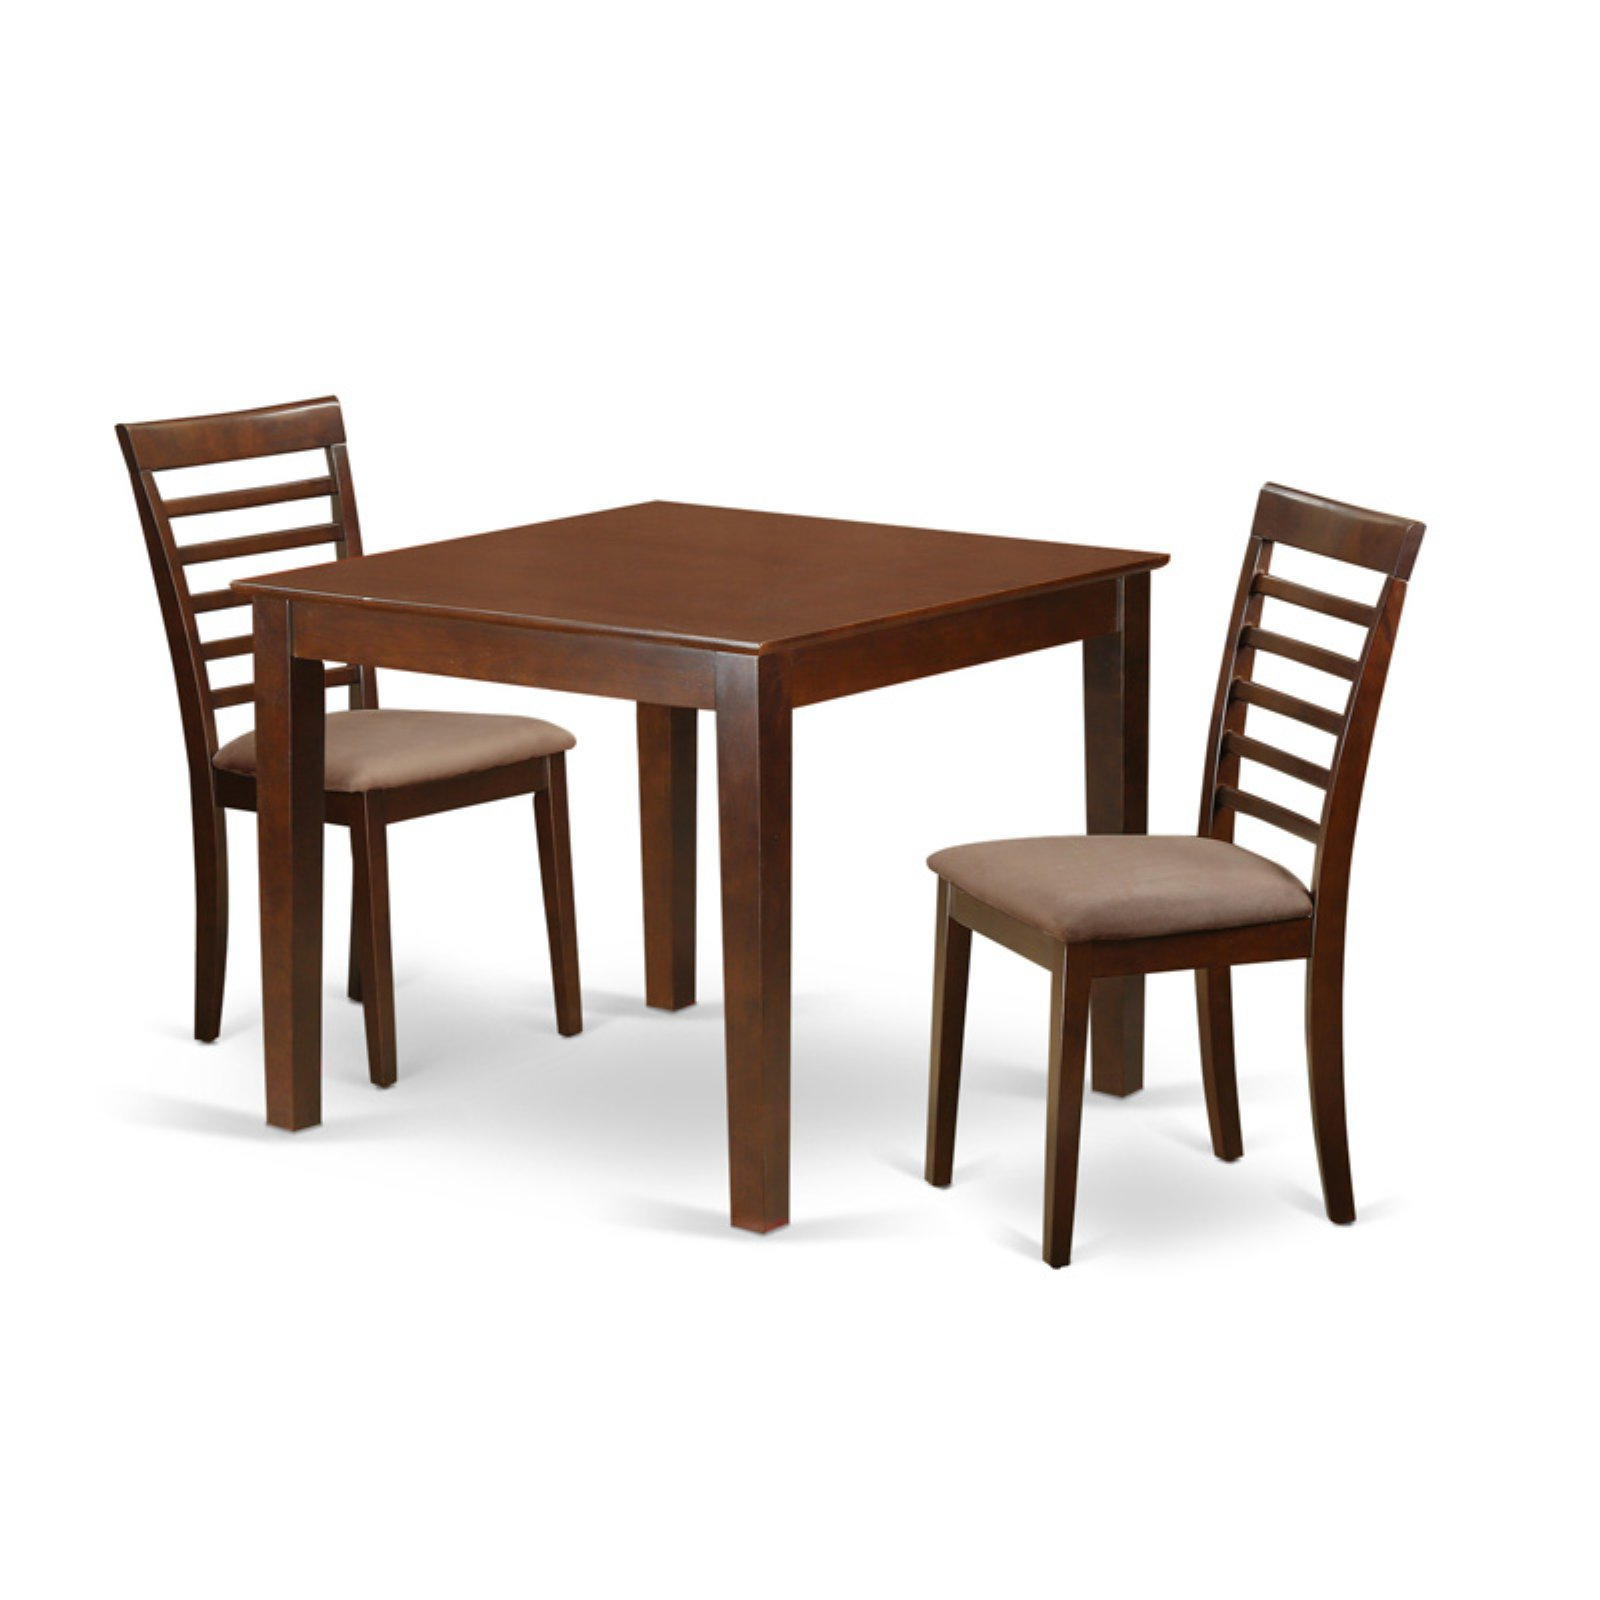 Recent Smyrna 3 Piece Dining Sets Inside East West Furniture 3 Piece Straight Ladderback Breakfast Nook (View 5 of 25)